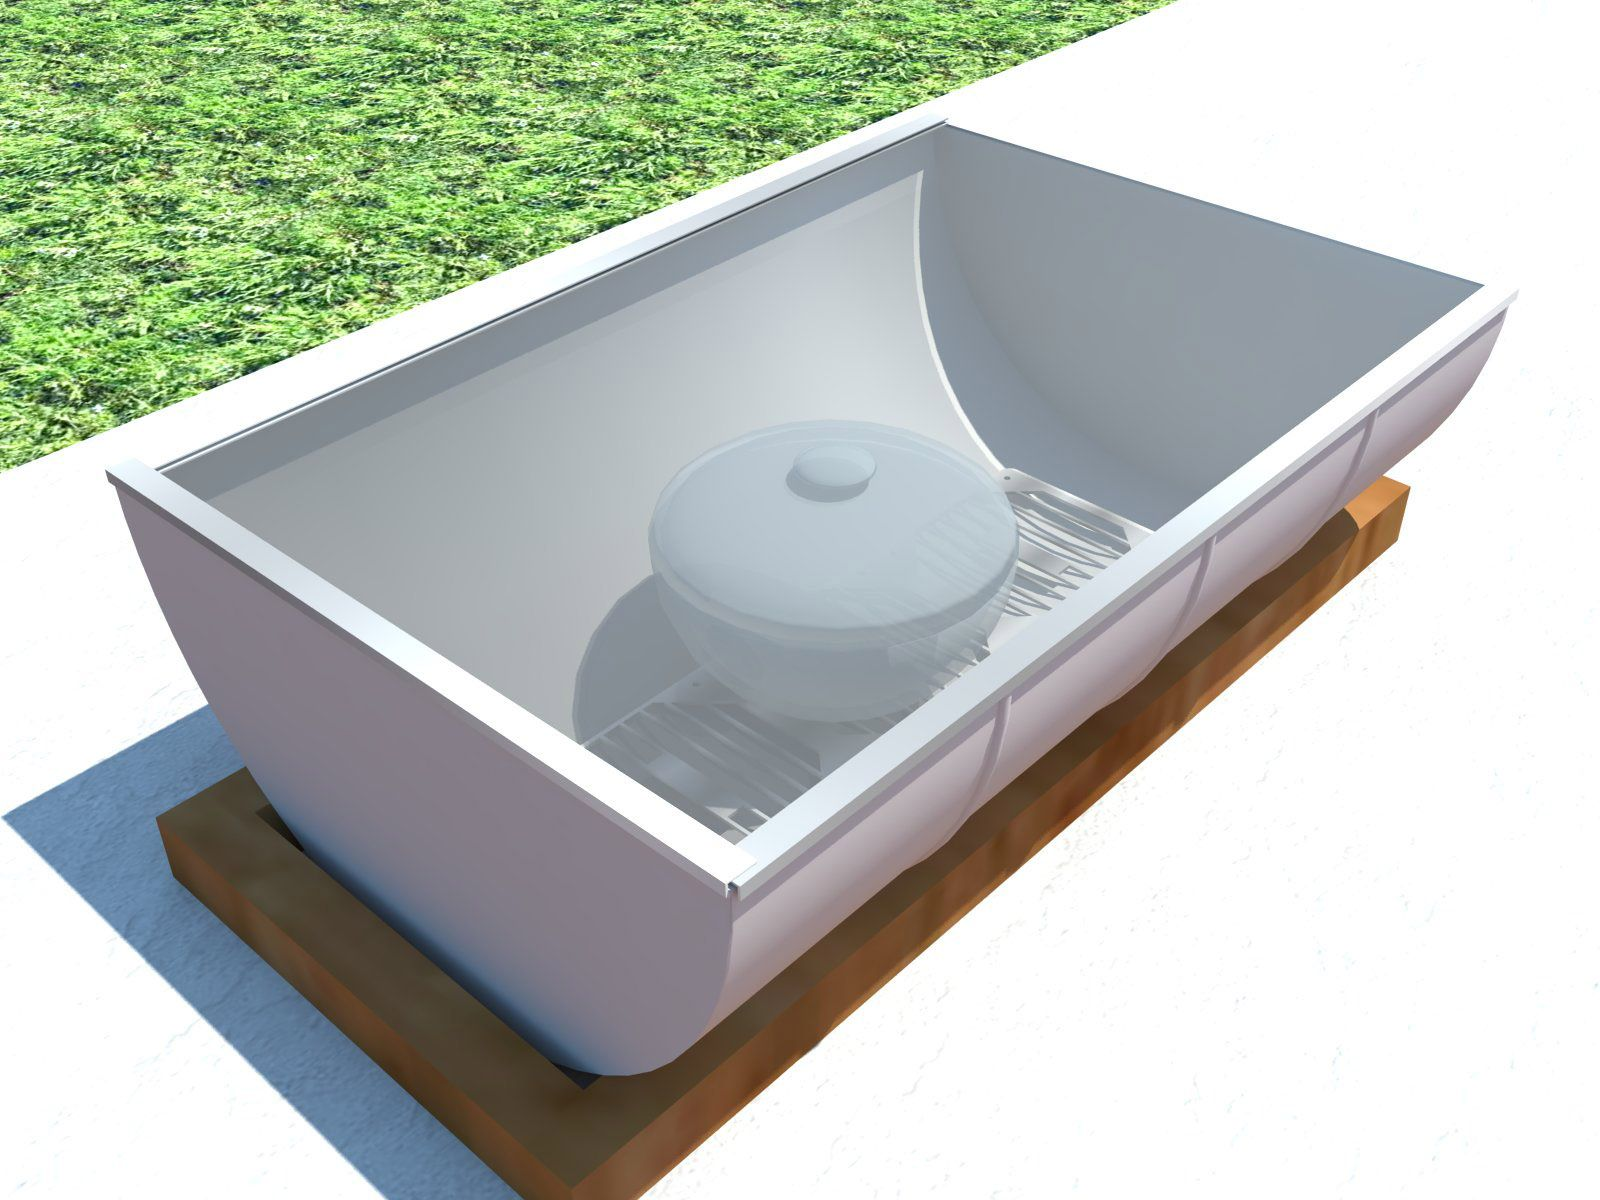 How To Make And Use A Solar Oven Solar Cooker Solar Oven Solar Oven Diy